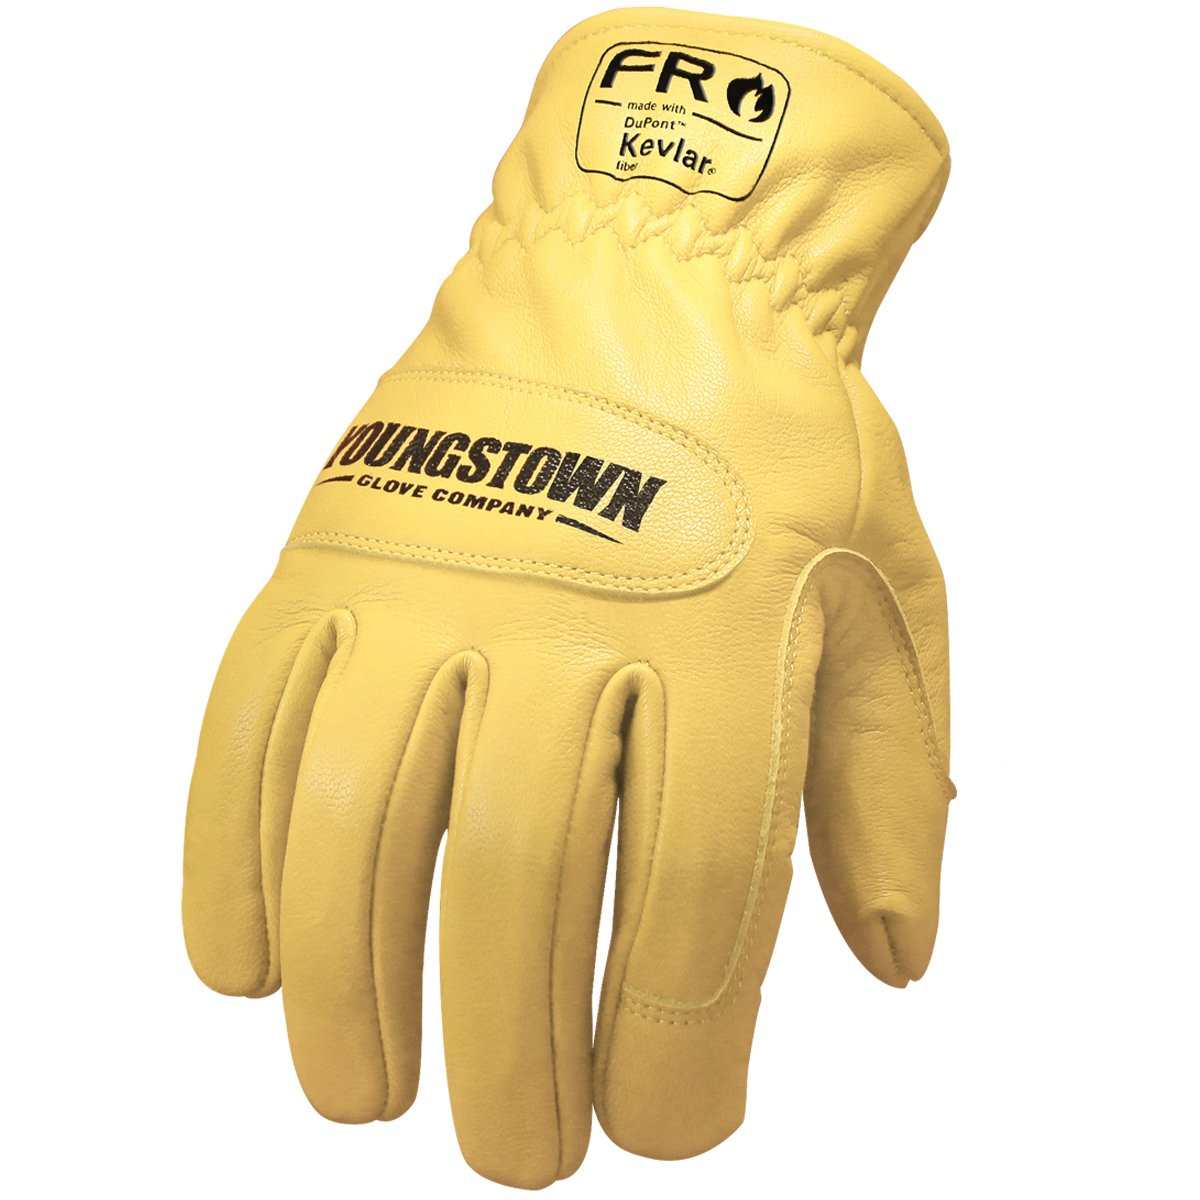 Youngstown Glove 12-3365-60-XL FR Ground Glove Lined w/ Kevlar Performance Work Gloves, Extra-Large, Tan